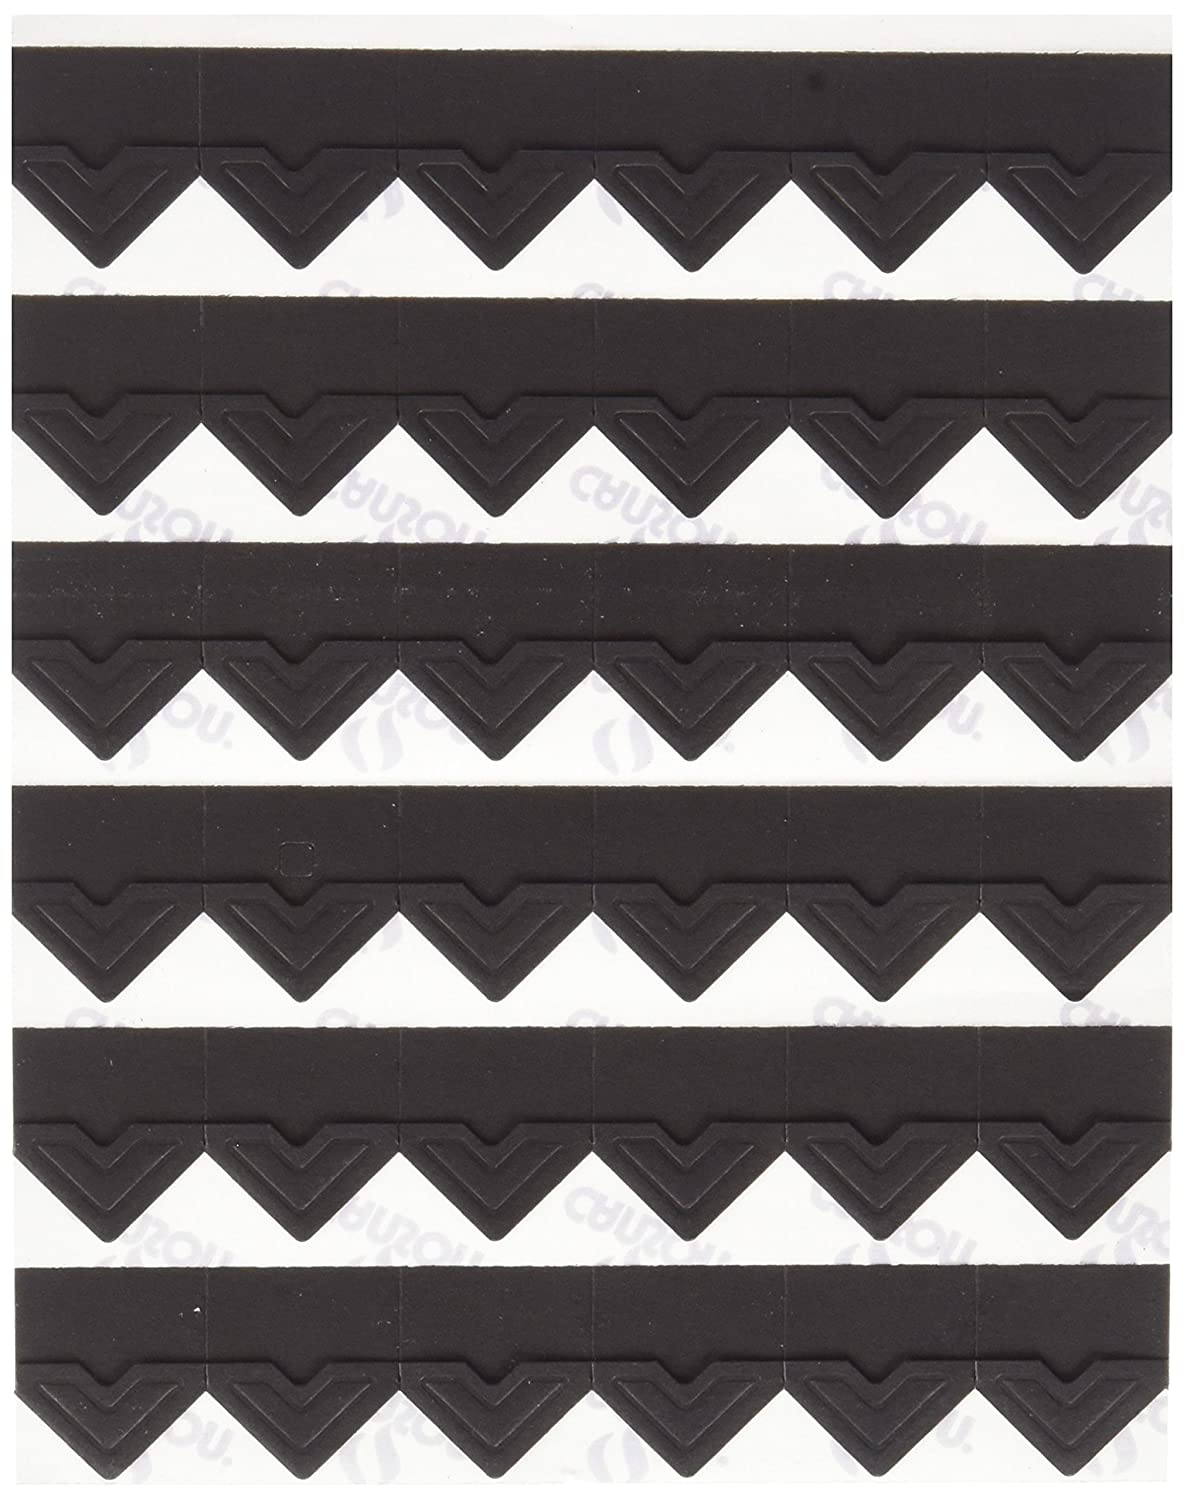 Canson Self Adhesive Photo Corners, Peel-Off Archival Quality, Black, 252-Pack (100510395) Canson Inc